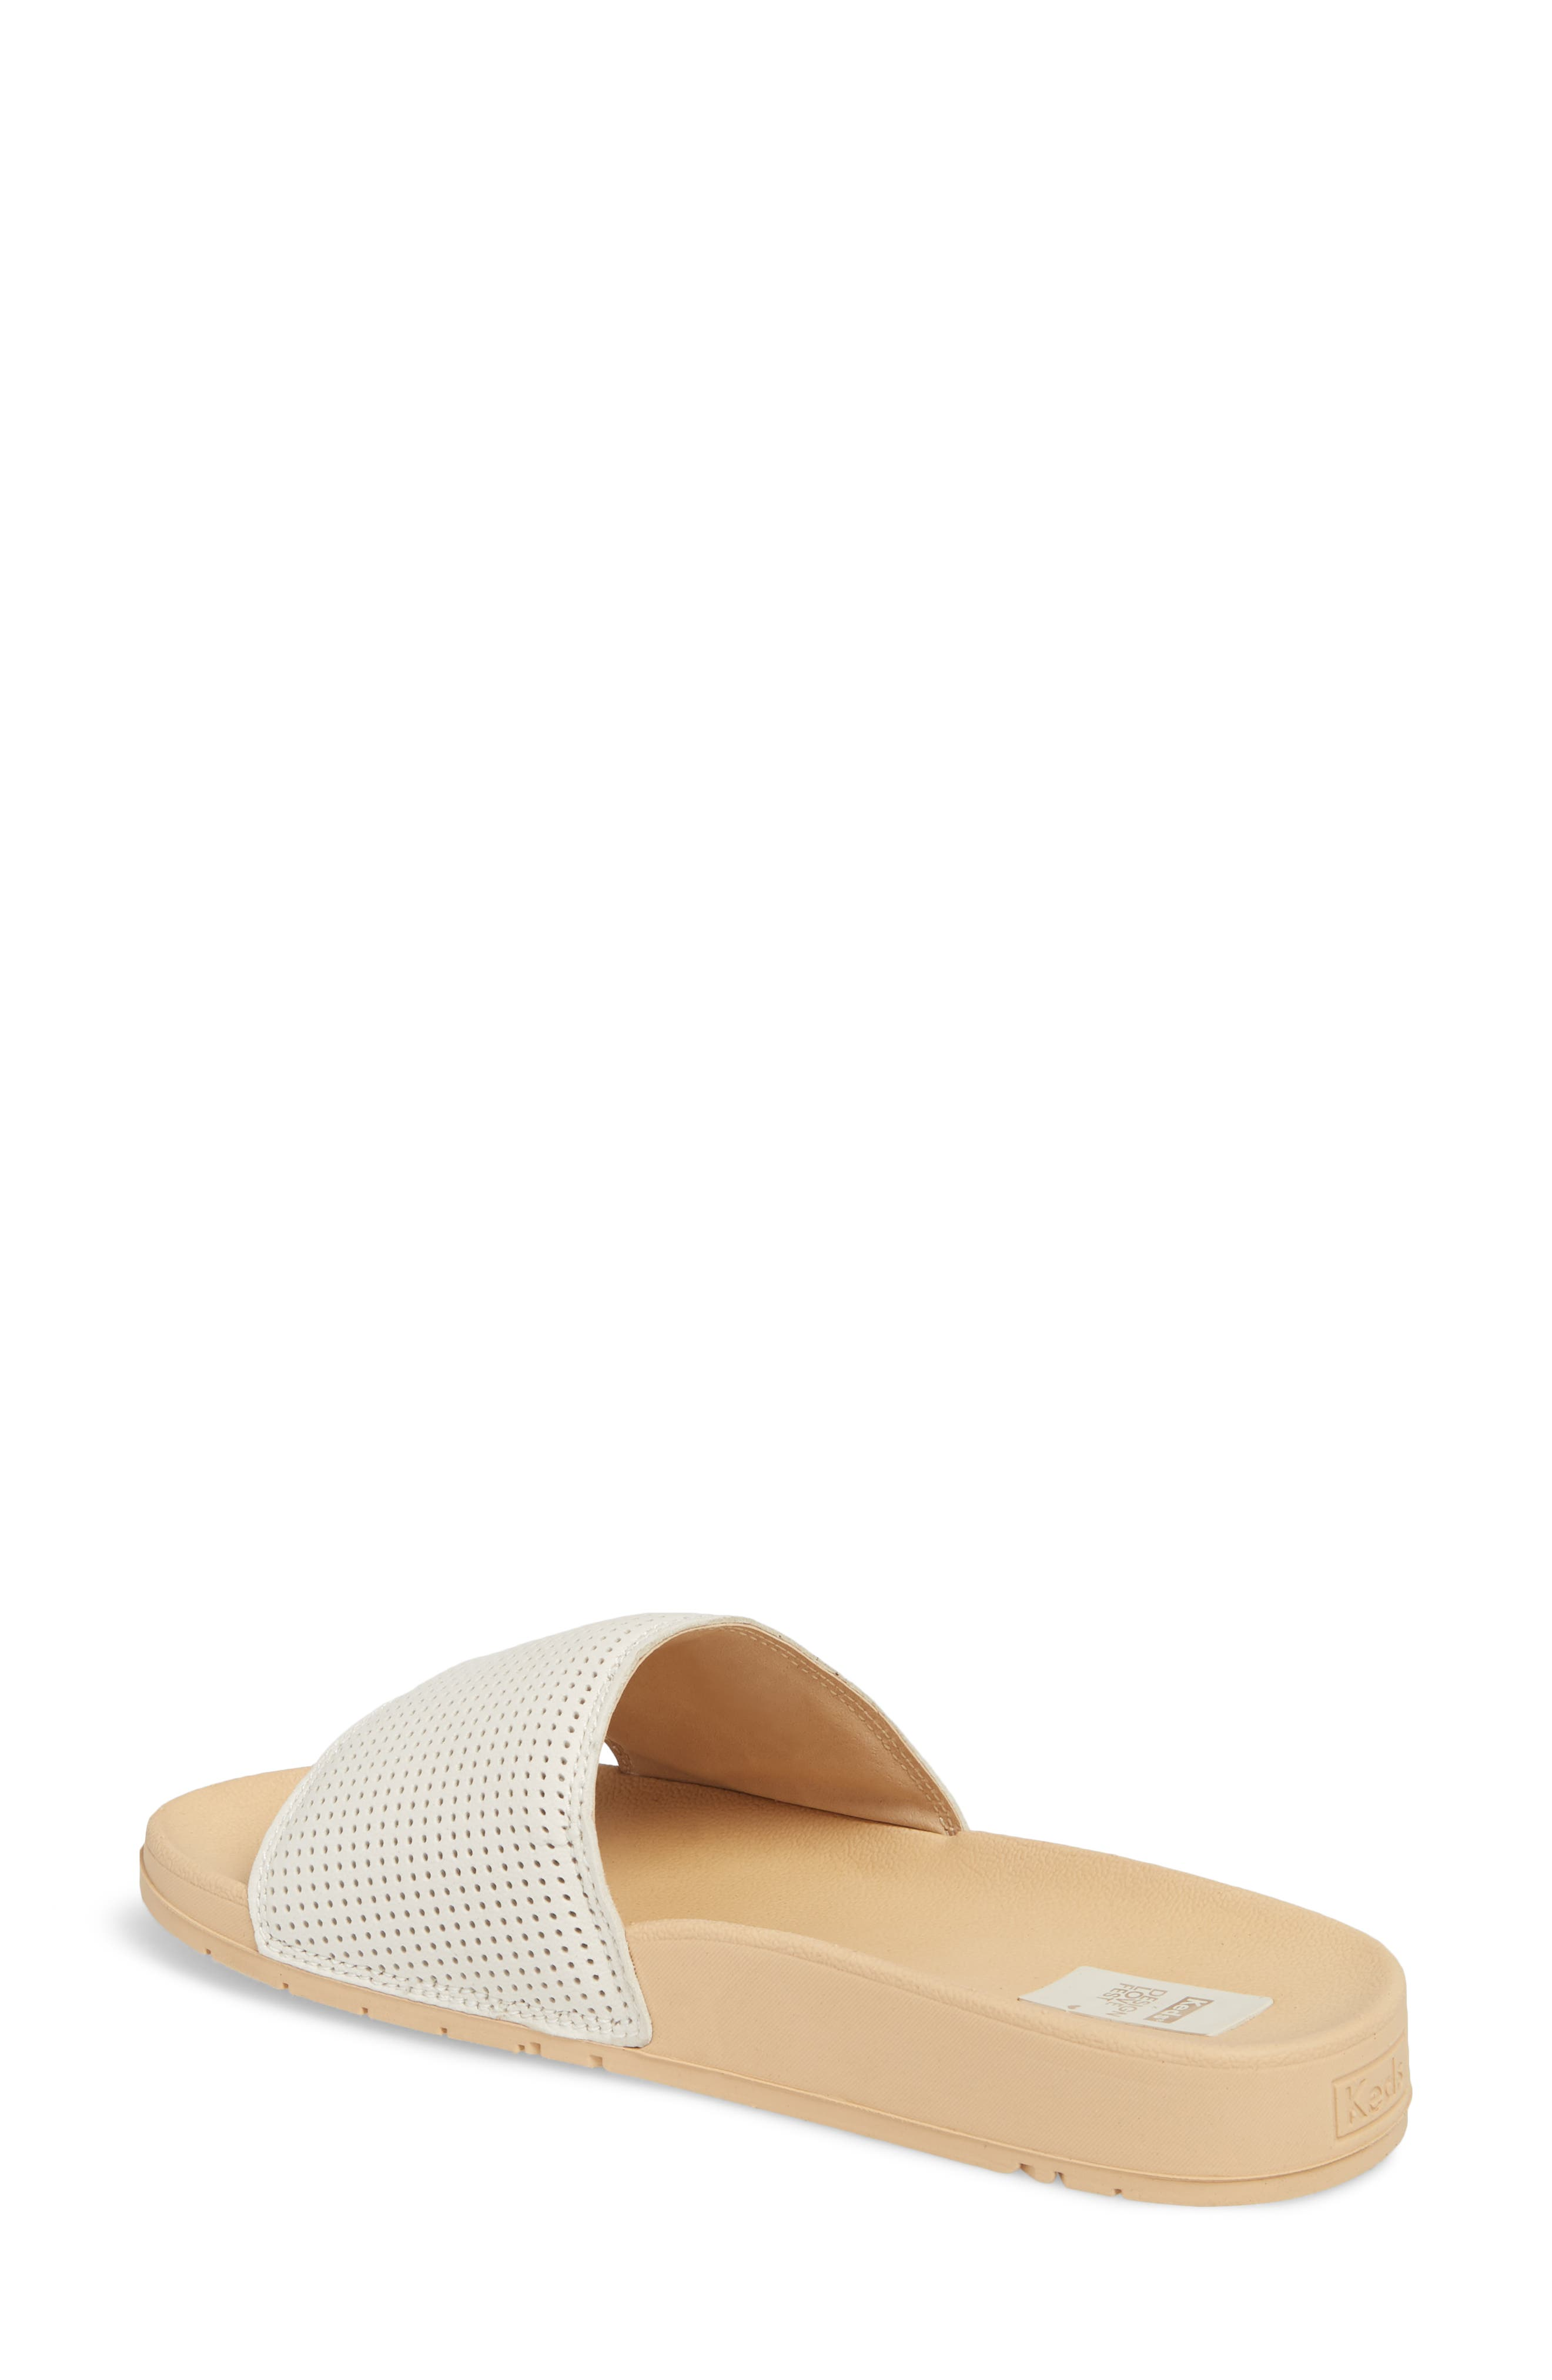 x Designlovefest Bliss Slide Sandal,                             Alternate thumbnail 2, color,                             CREAM/ TAN